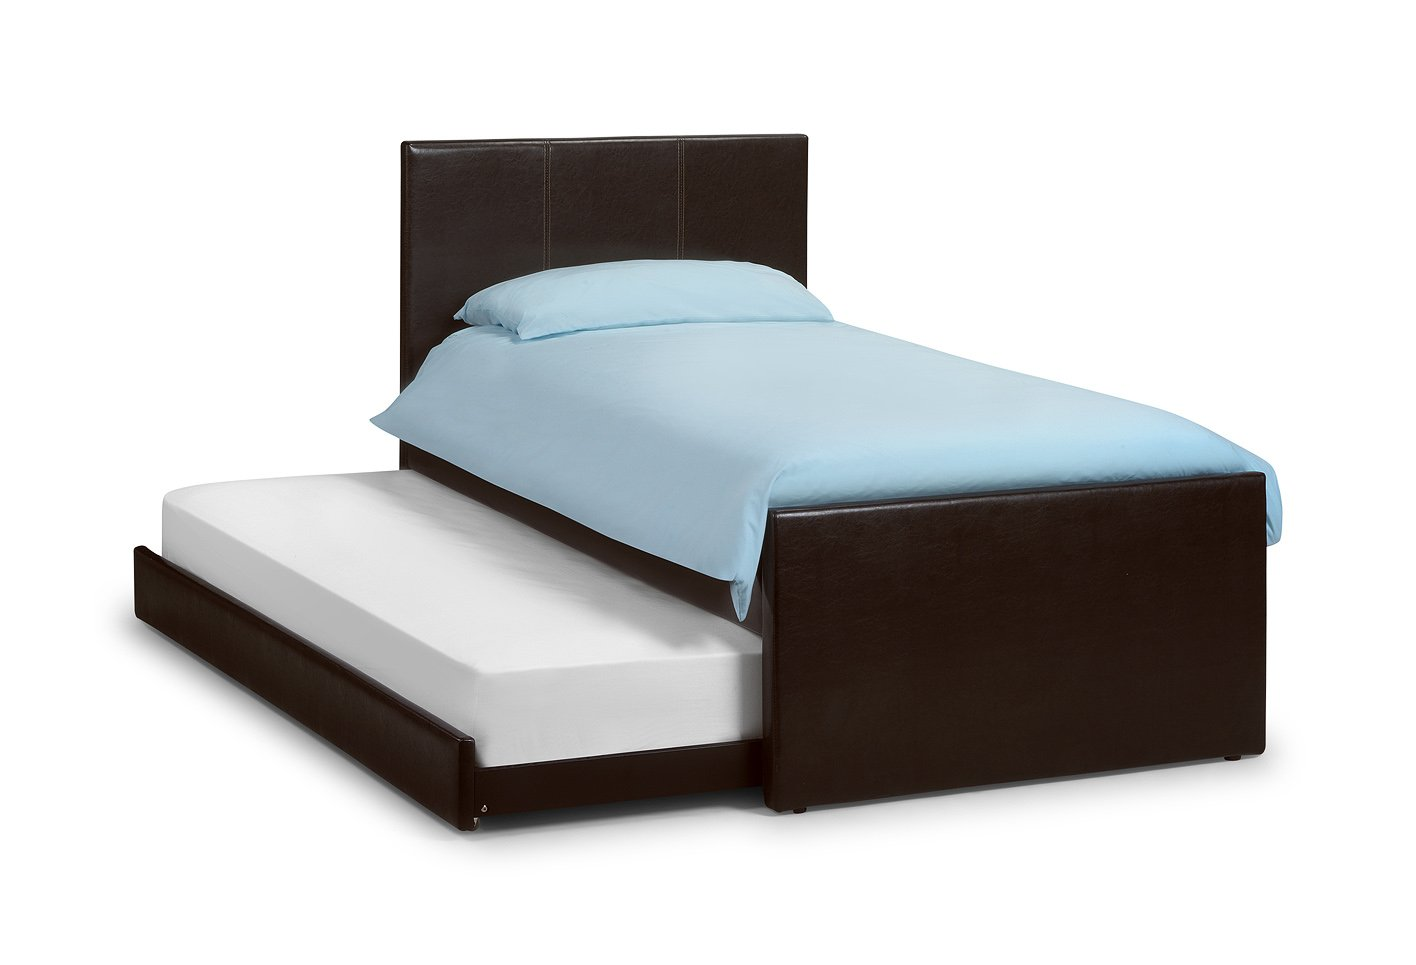 Cosmo Brown Guest, 3ft Single, Quality Leather Pull out Guest Bed Frame       reviews and more information